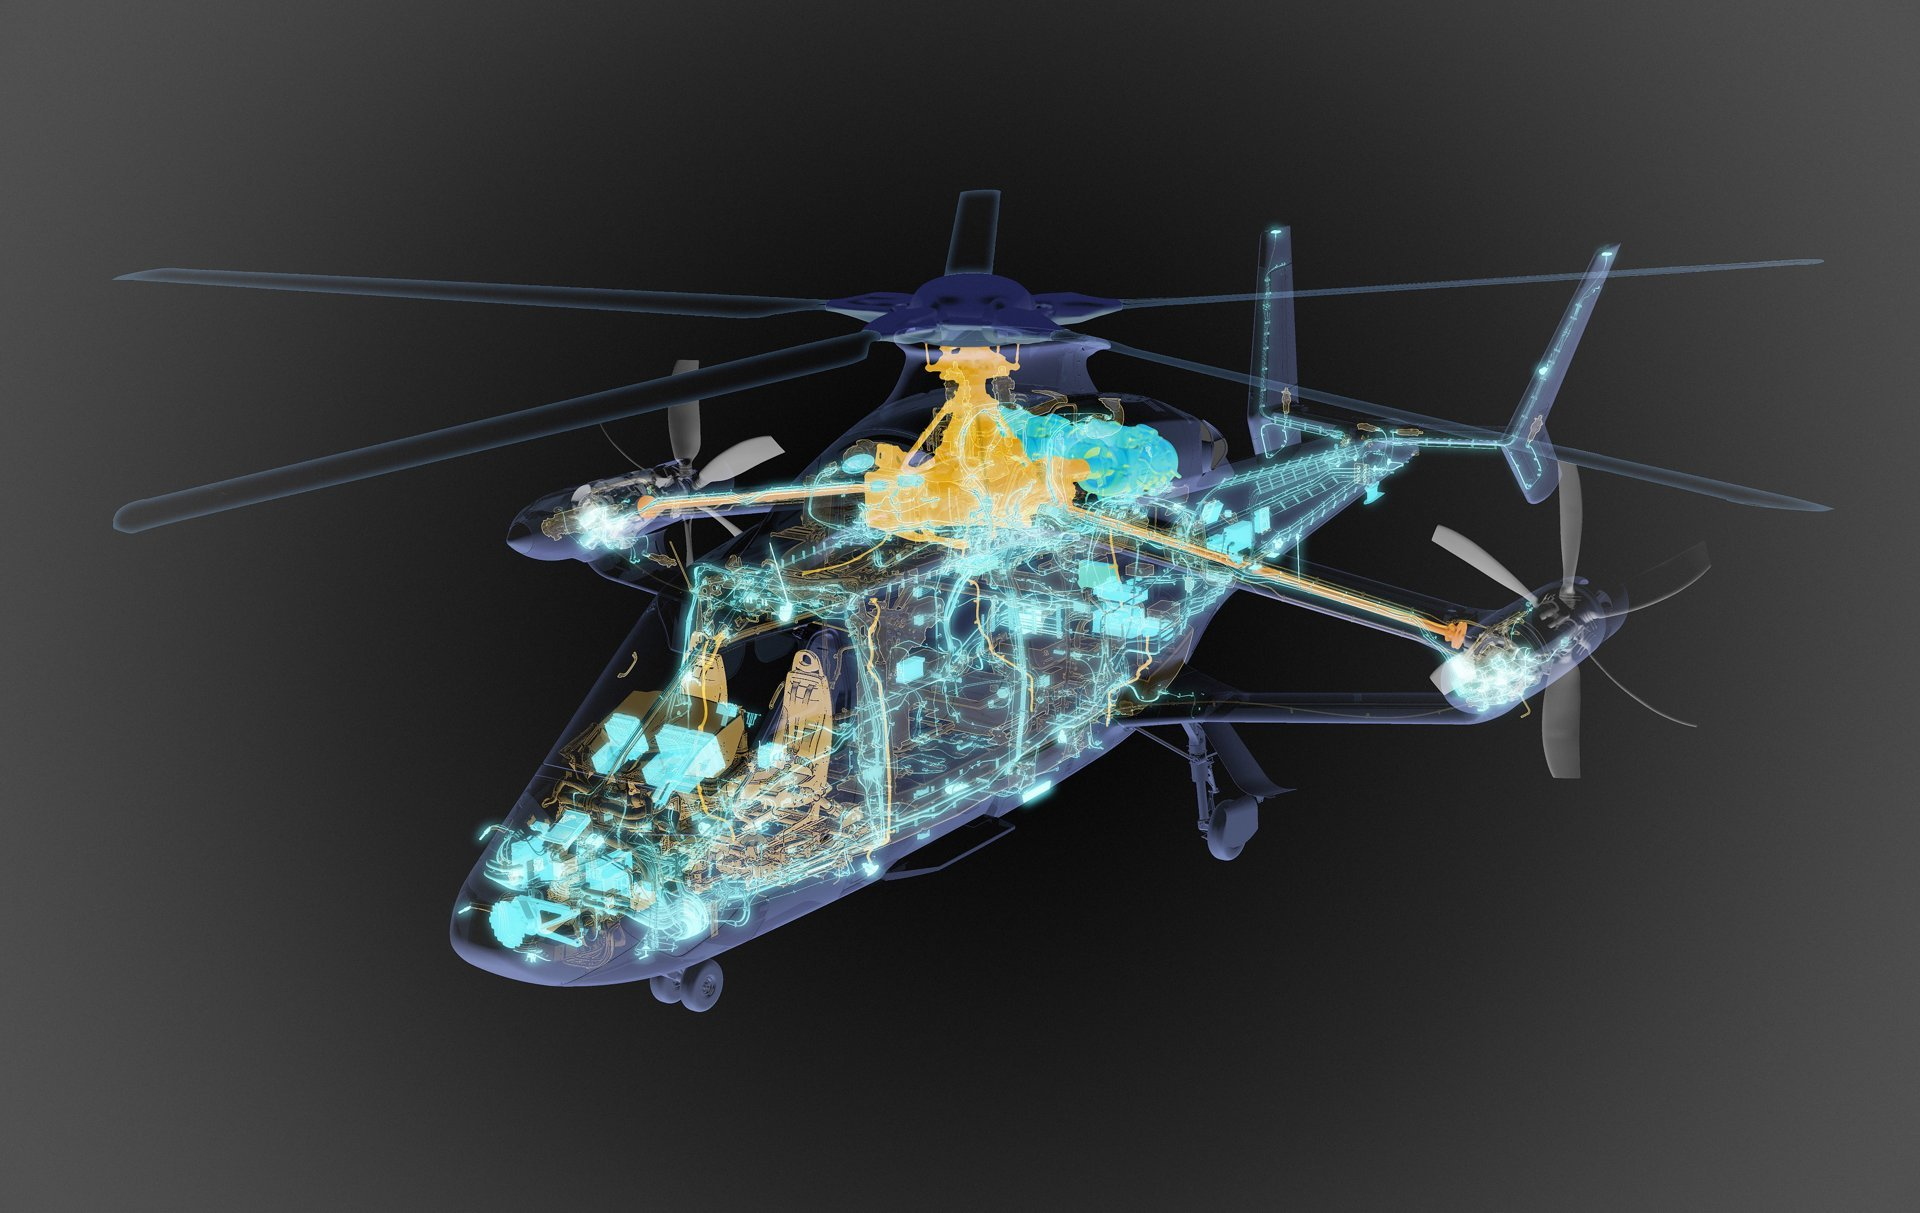 Airbus Racer high speed chopper achieves preliminary design review